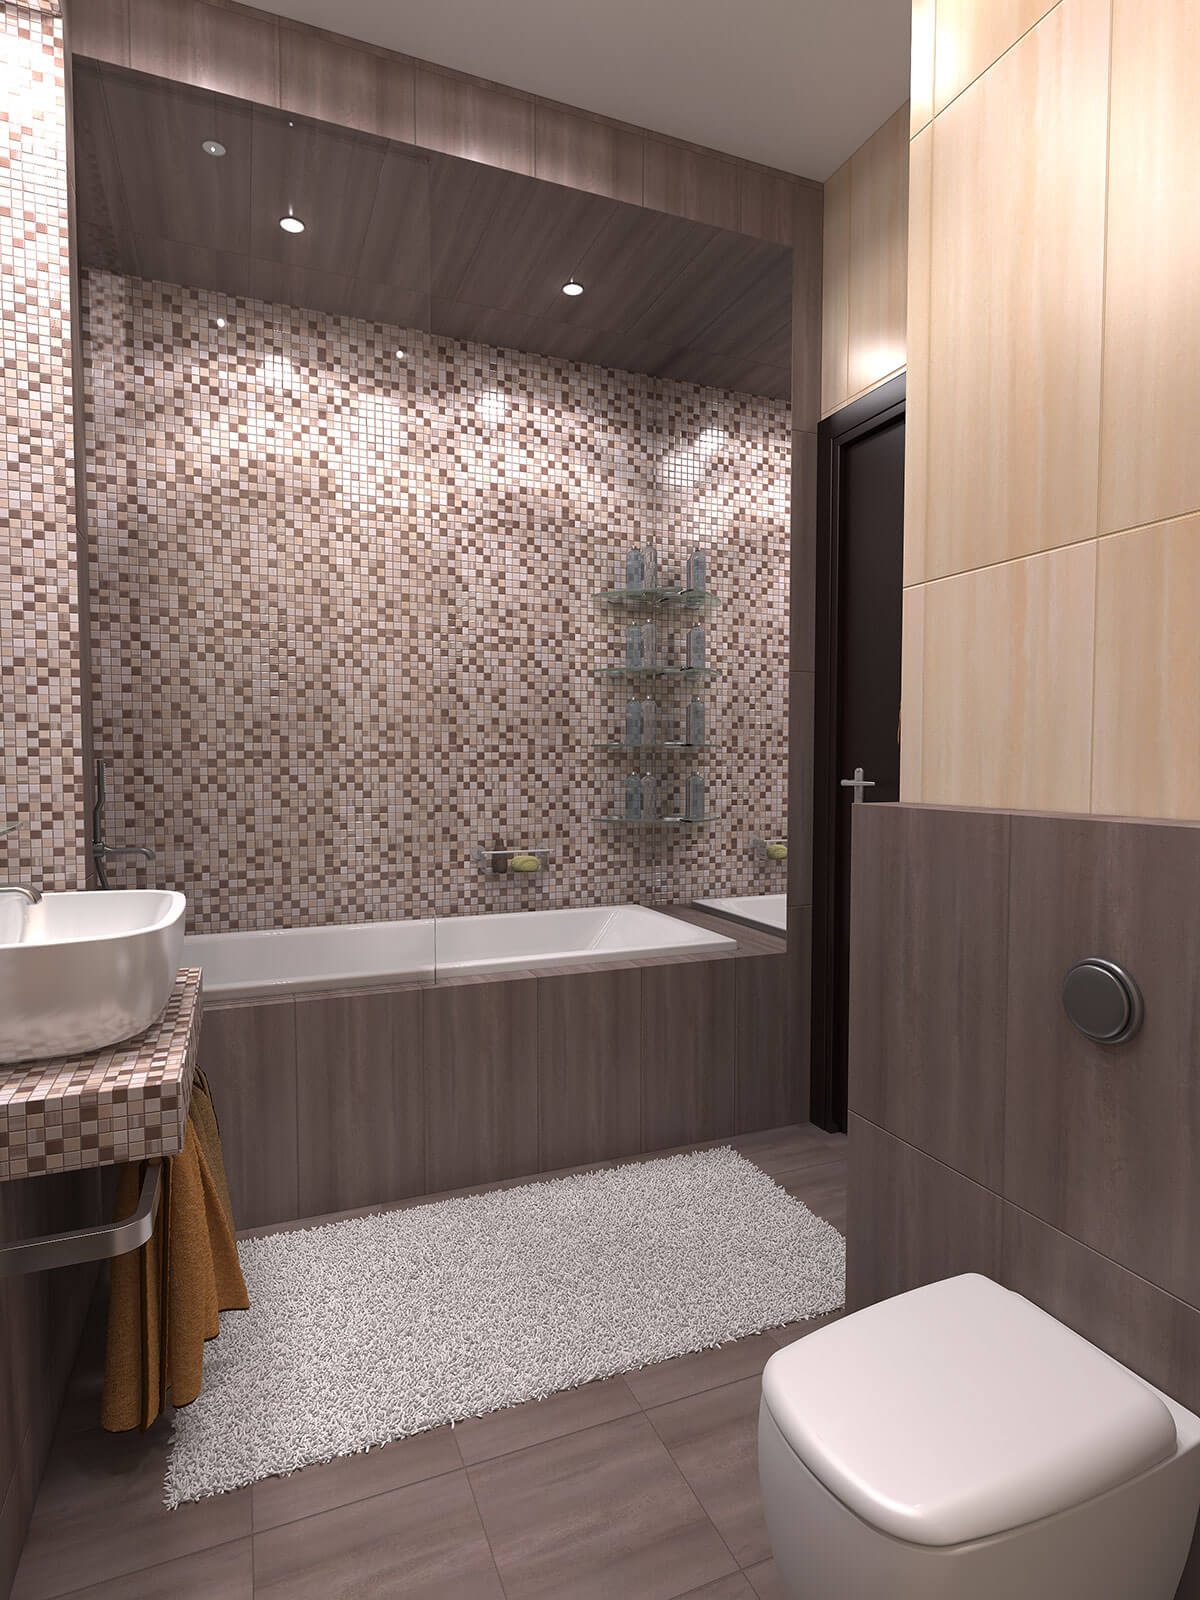 3D interior design, 3D visualization of the bathroom, 3D modeling, London, UK.